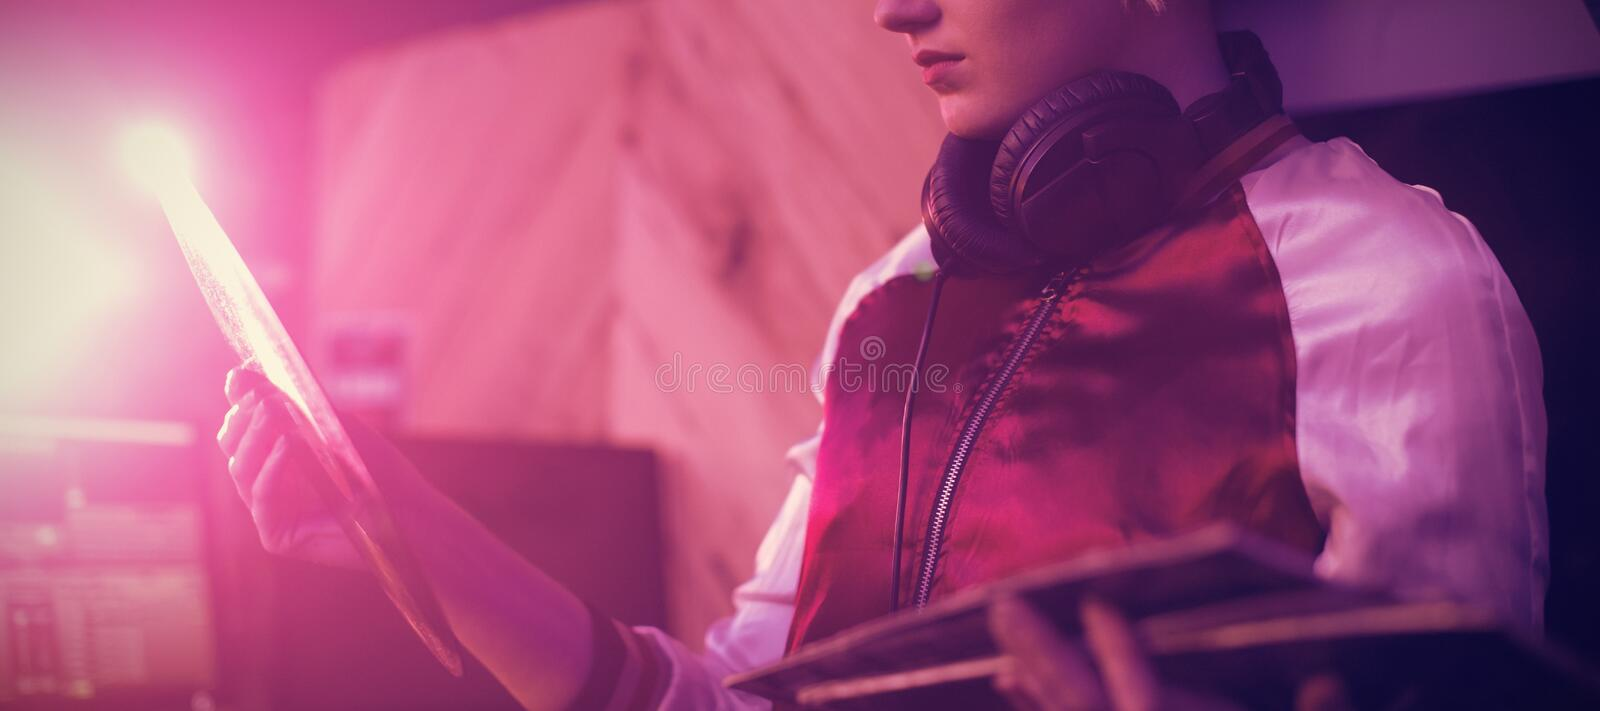 Female dj holding a vinyl disc record in bar royalty free stock photography